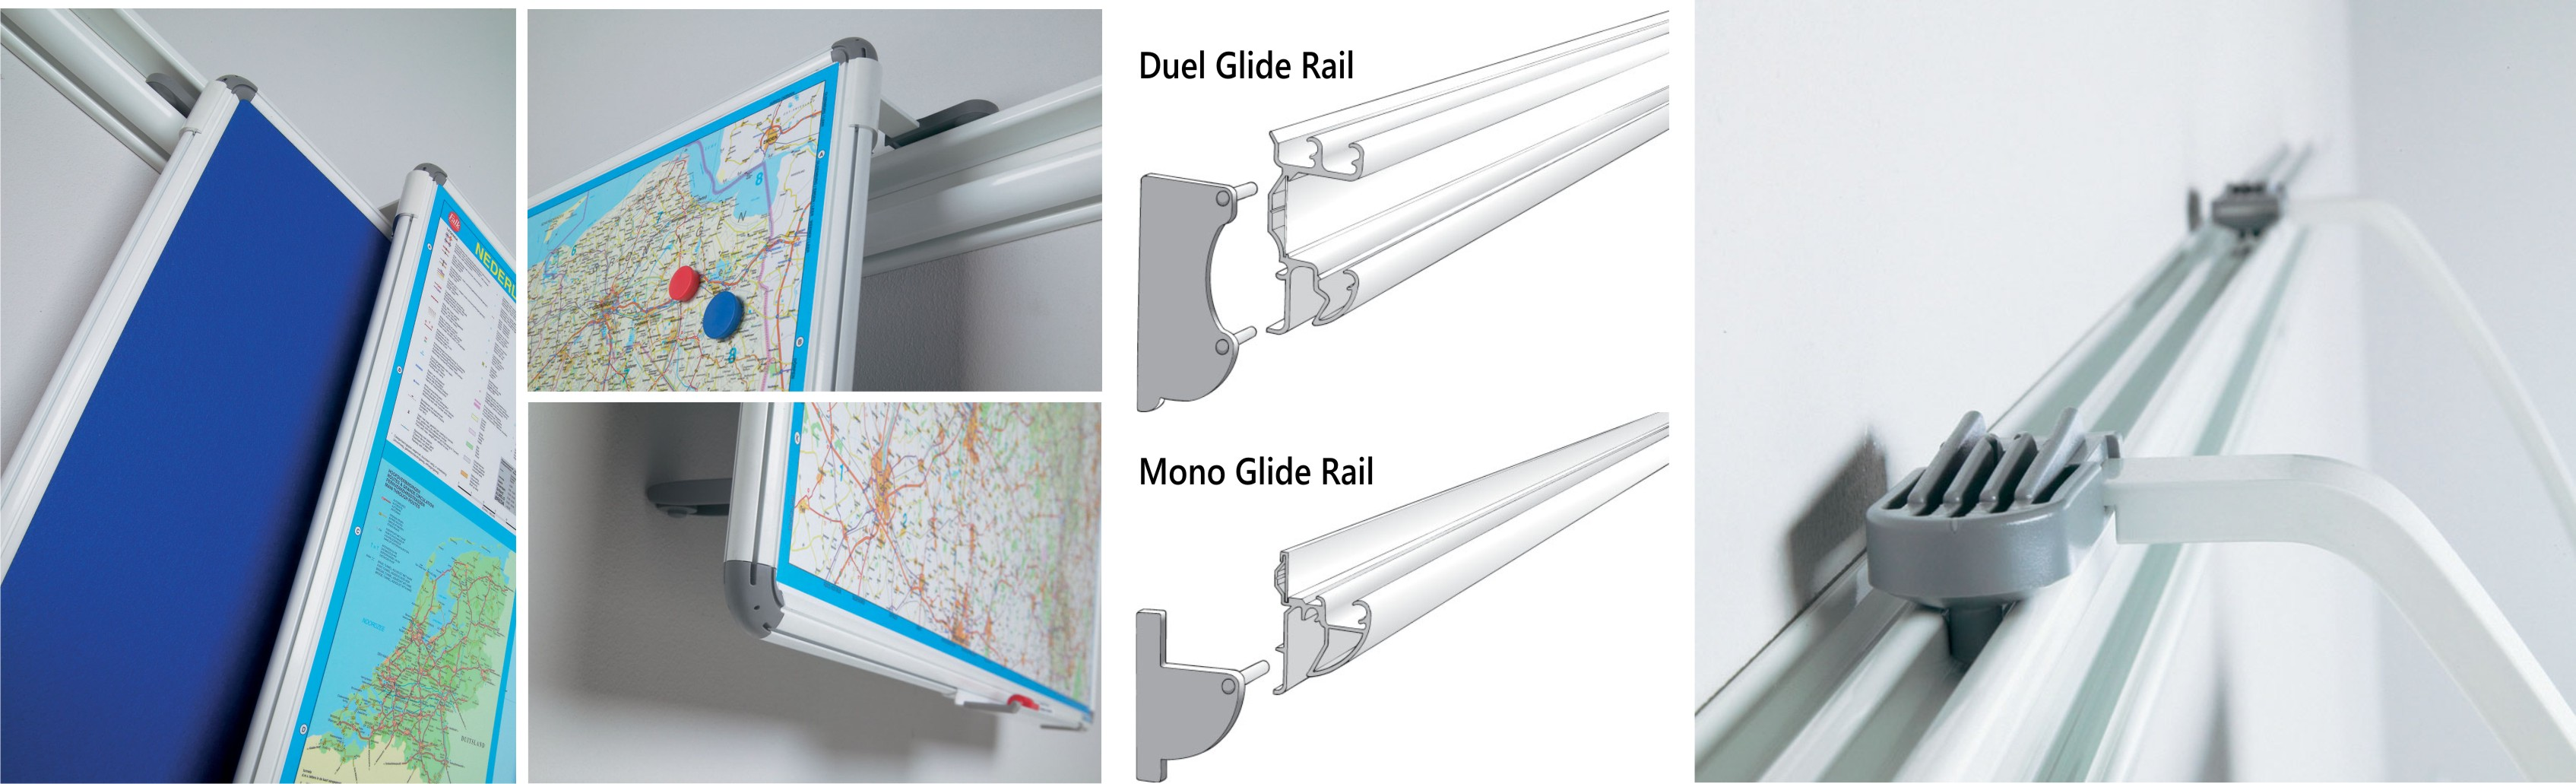 Busy Rail Deluxe - Wall Mounted Rail System